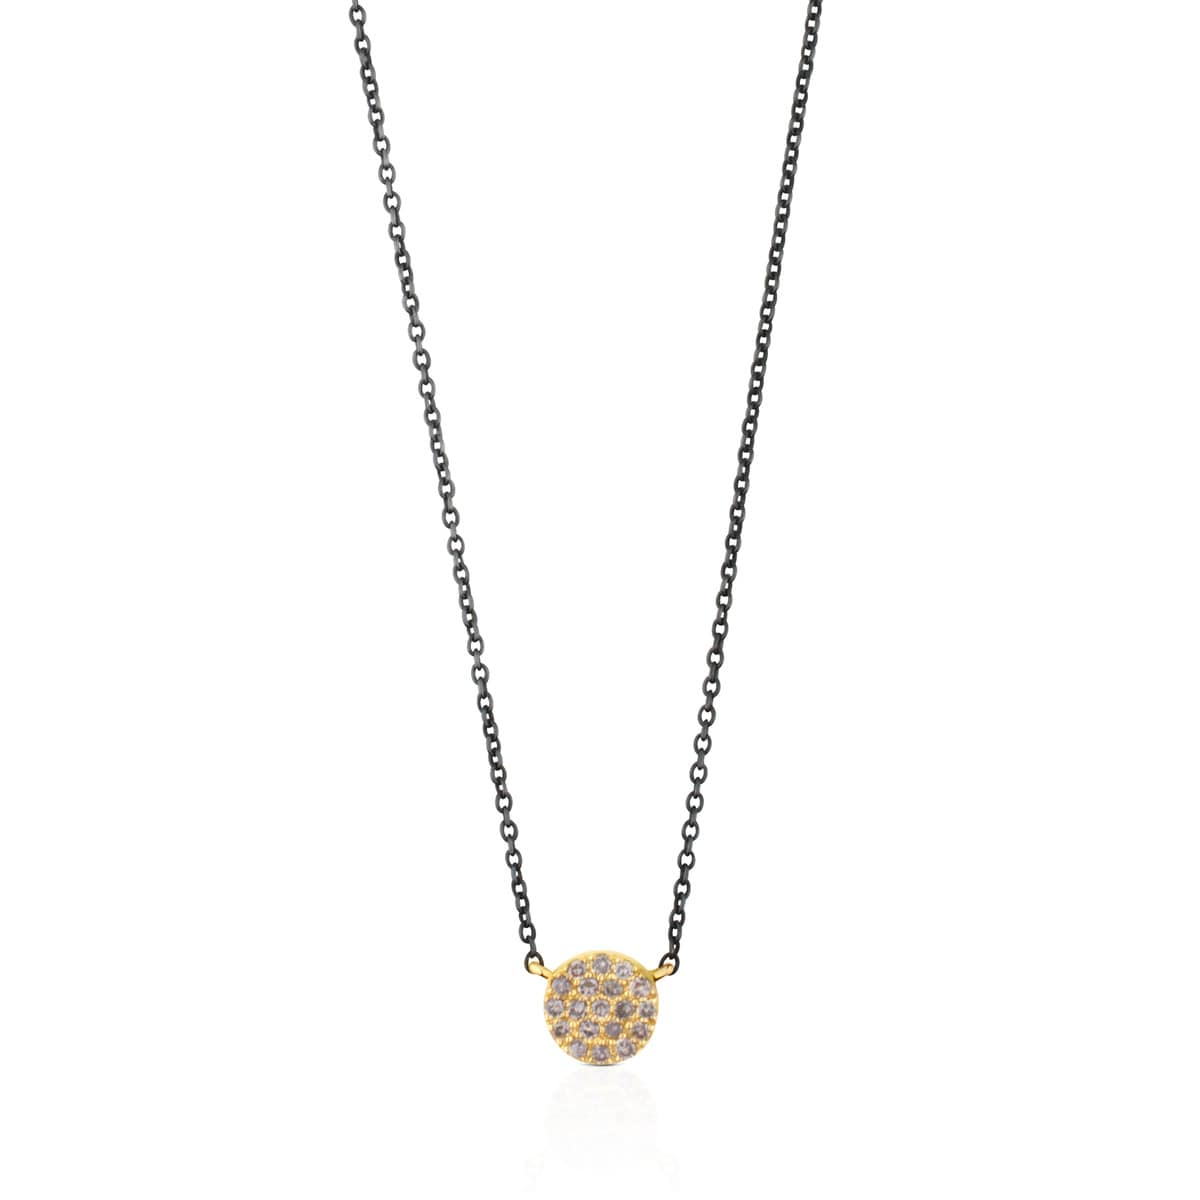 7a87eb65f Silver and Gold Gem Power Necklace with Diamonds - Tous Site US